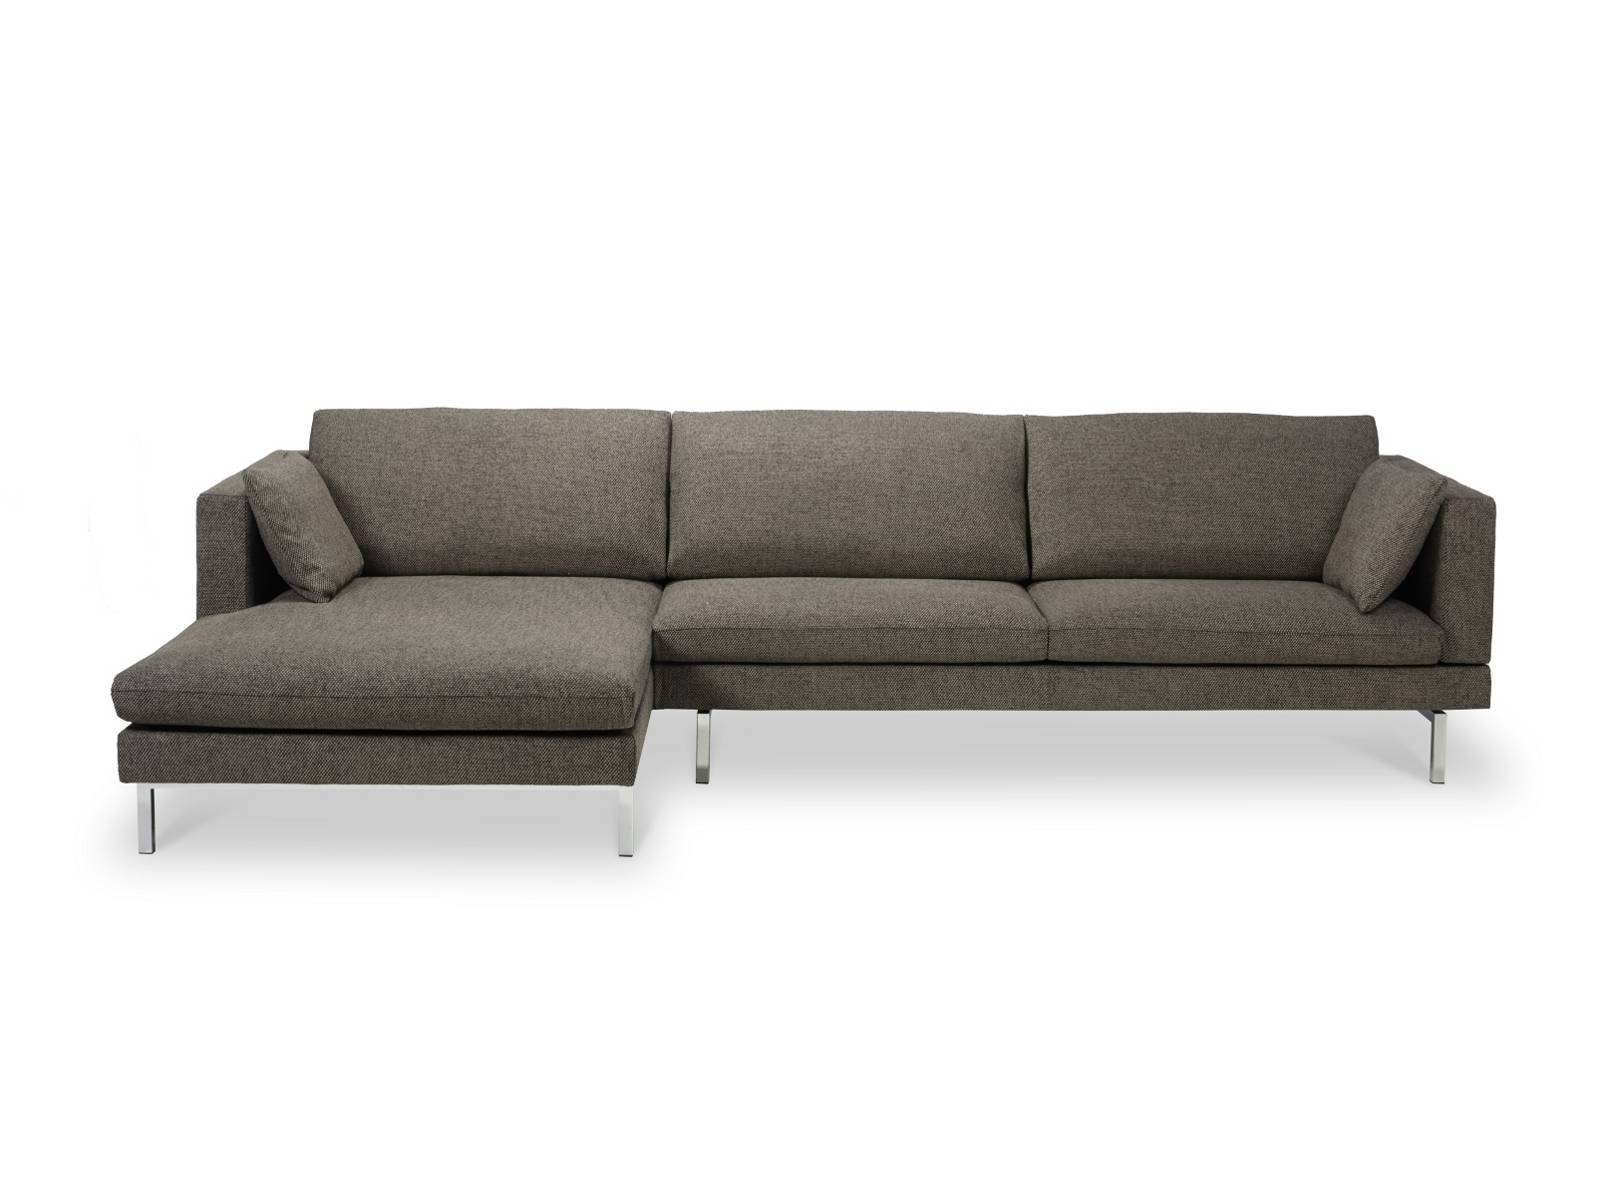 Tigra | Sofajori Design Verhaert New Products & Services intended for Sofas With Chaise Longue (Image 29 of 30)